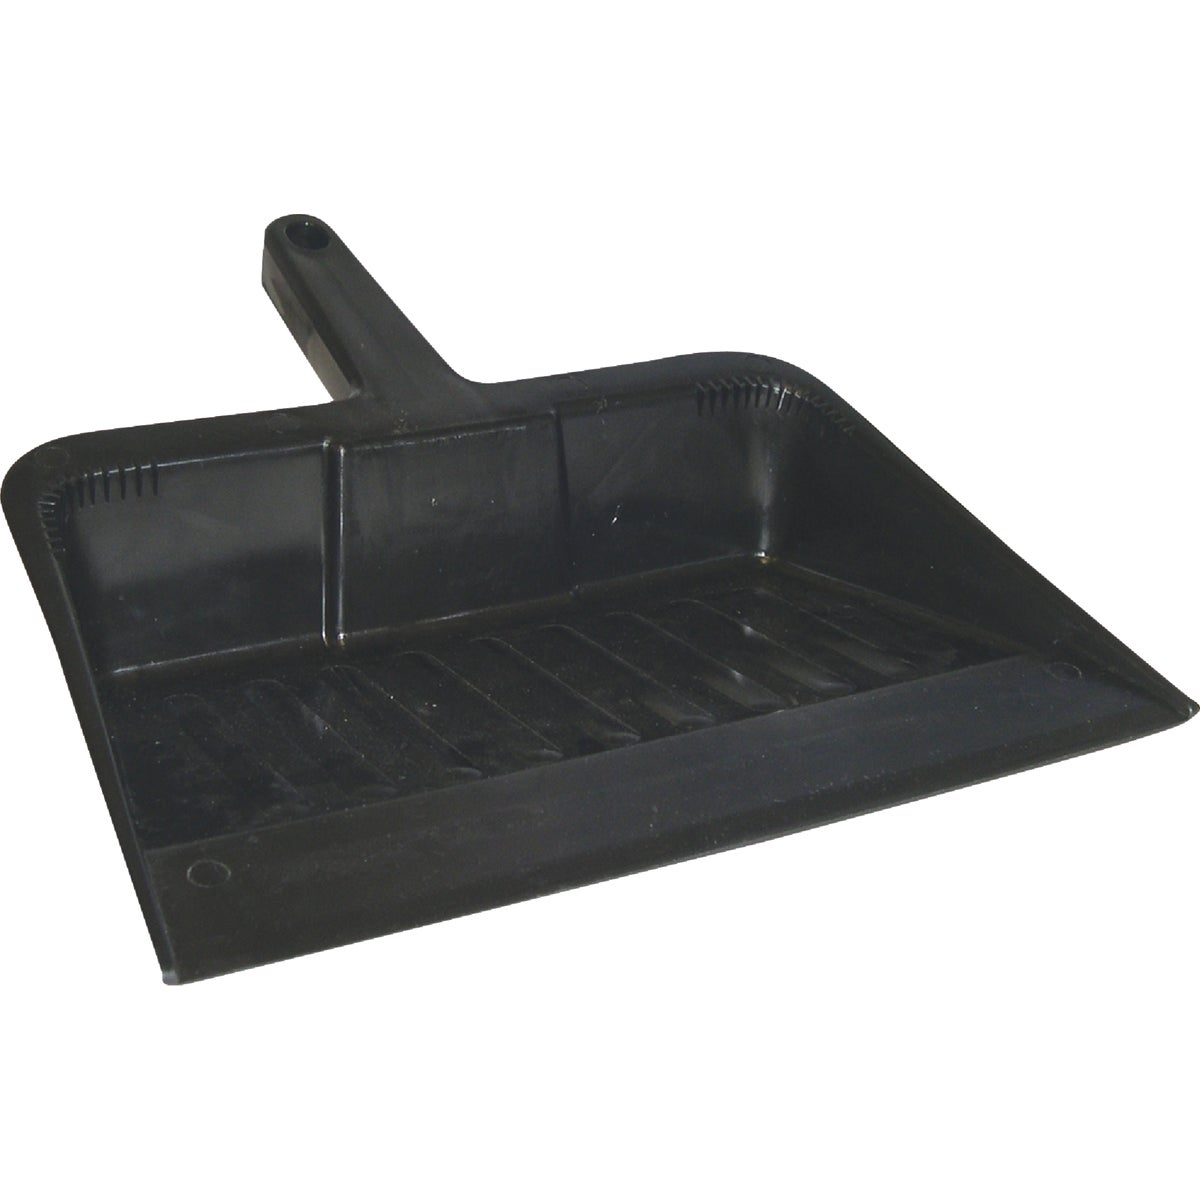 COMMERCIAL DUST PAN - 480-7 by Harper Brush Incom